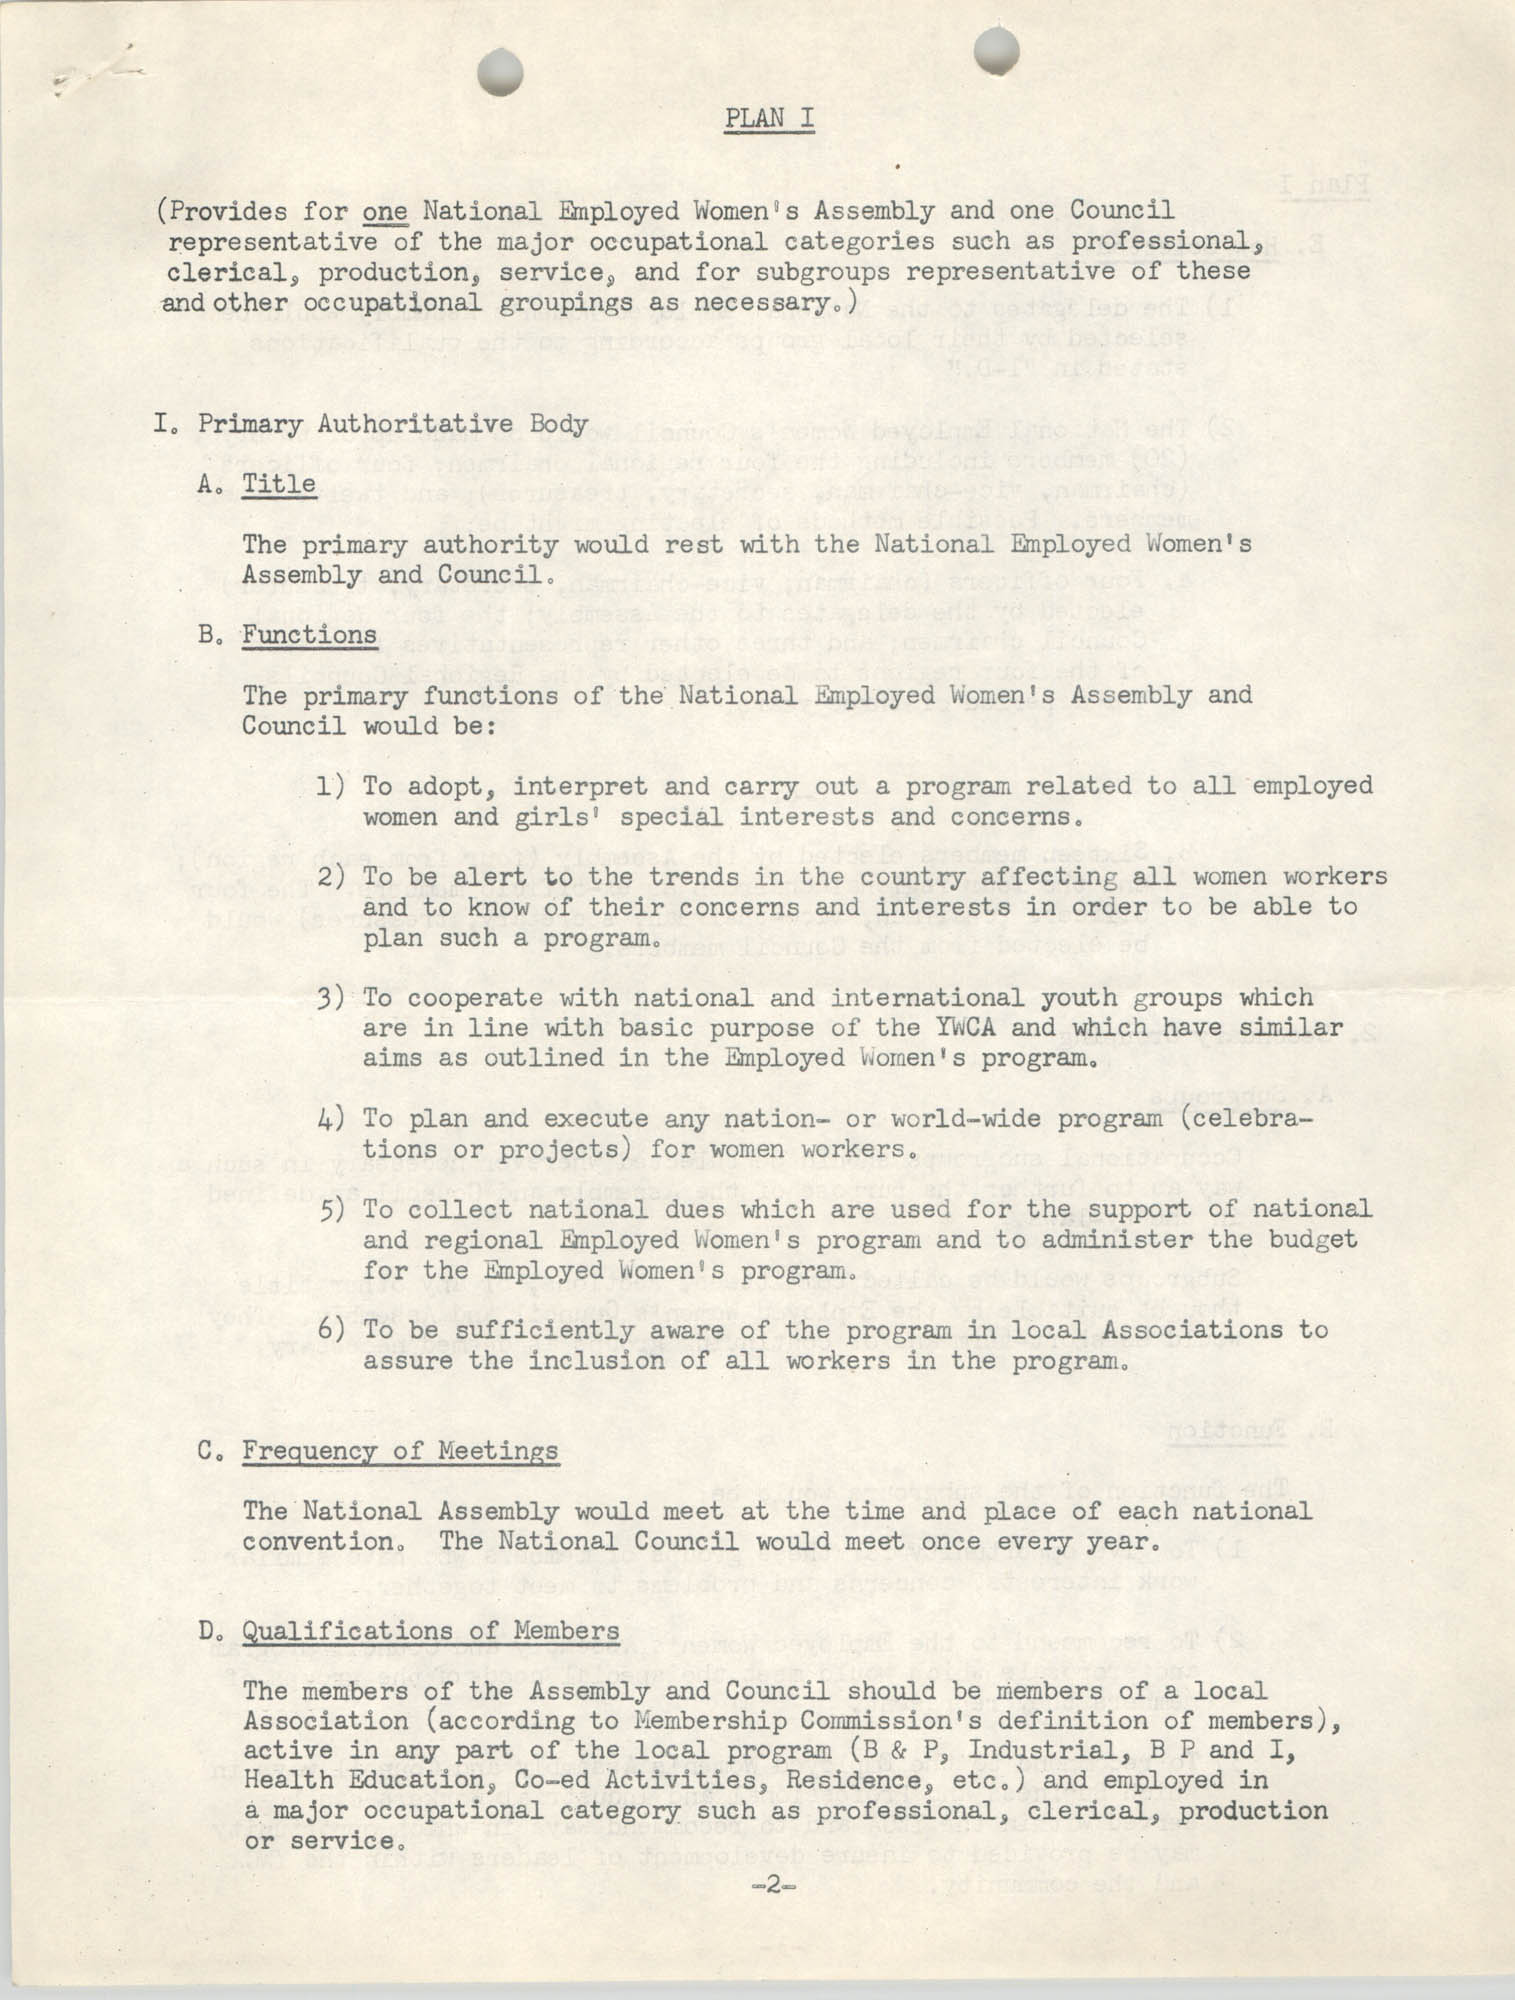 Division of Community Y.W.C.A.'s Committee Report, Plan I, Page 2